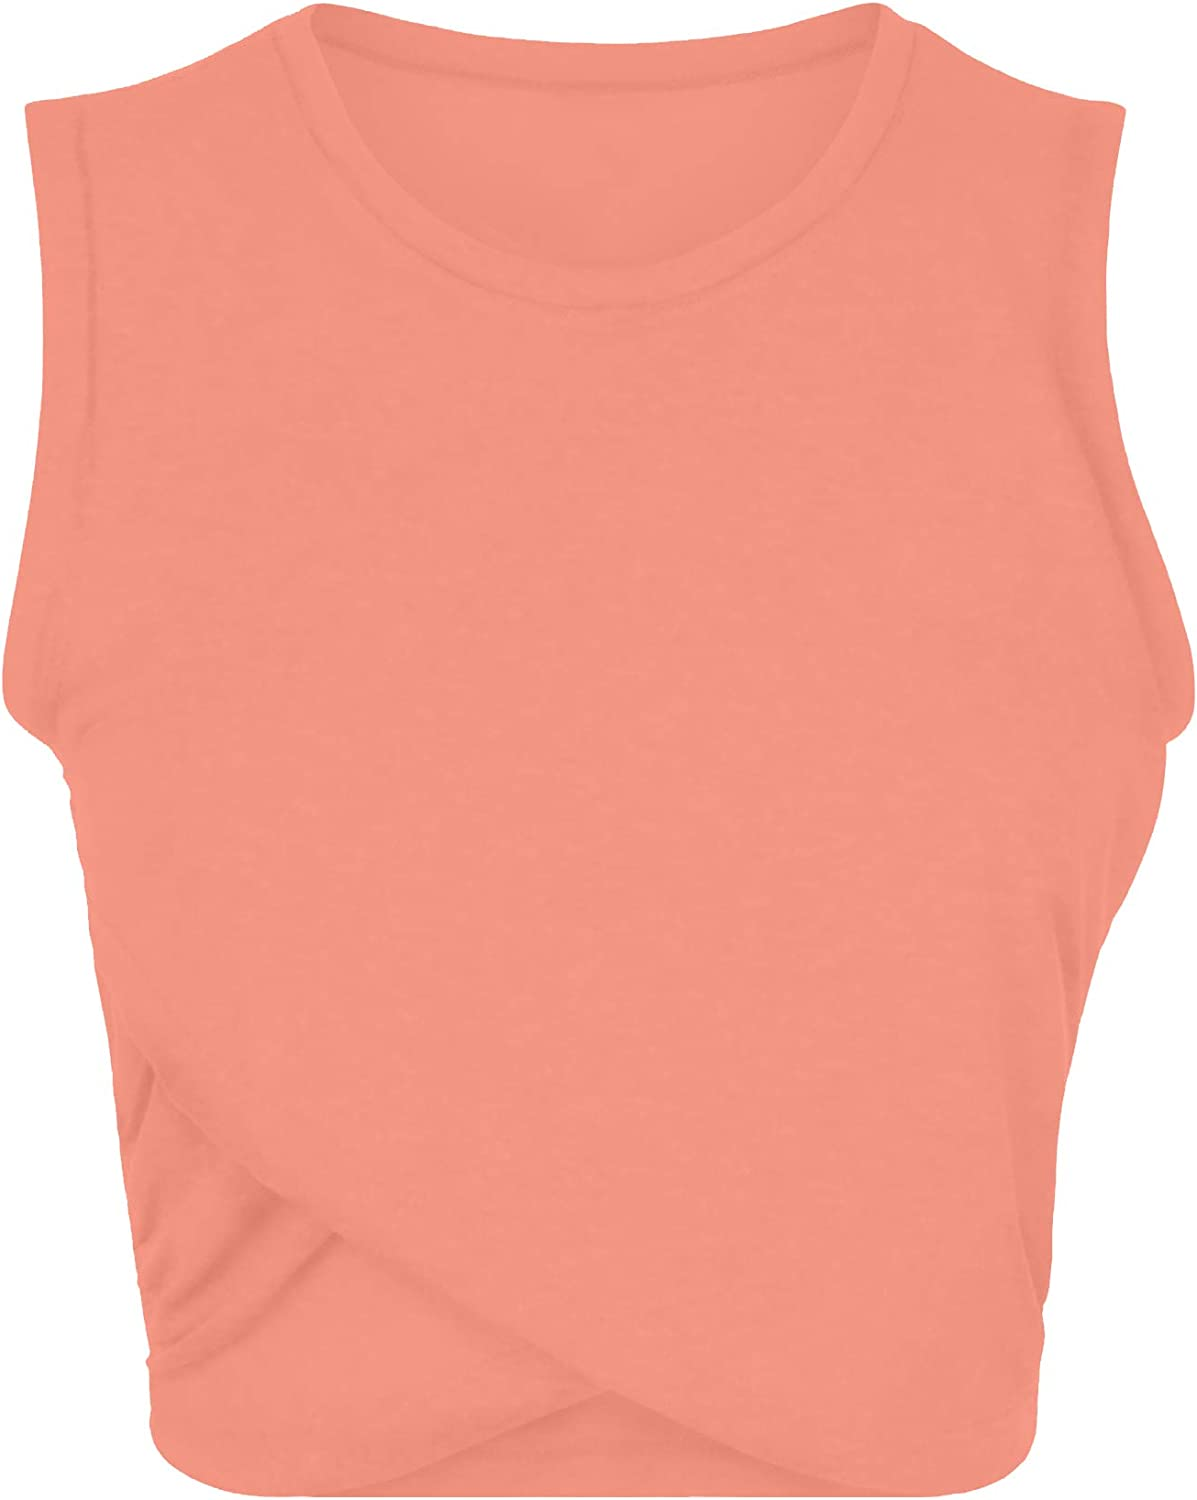 Sanutch Workout Yoga Crop Tops Gym Exercise Clothes Crop Top Workout Muslce Shirts for Women